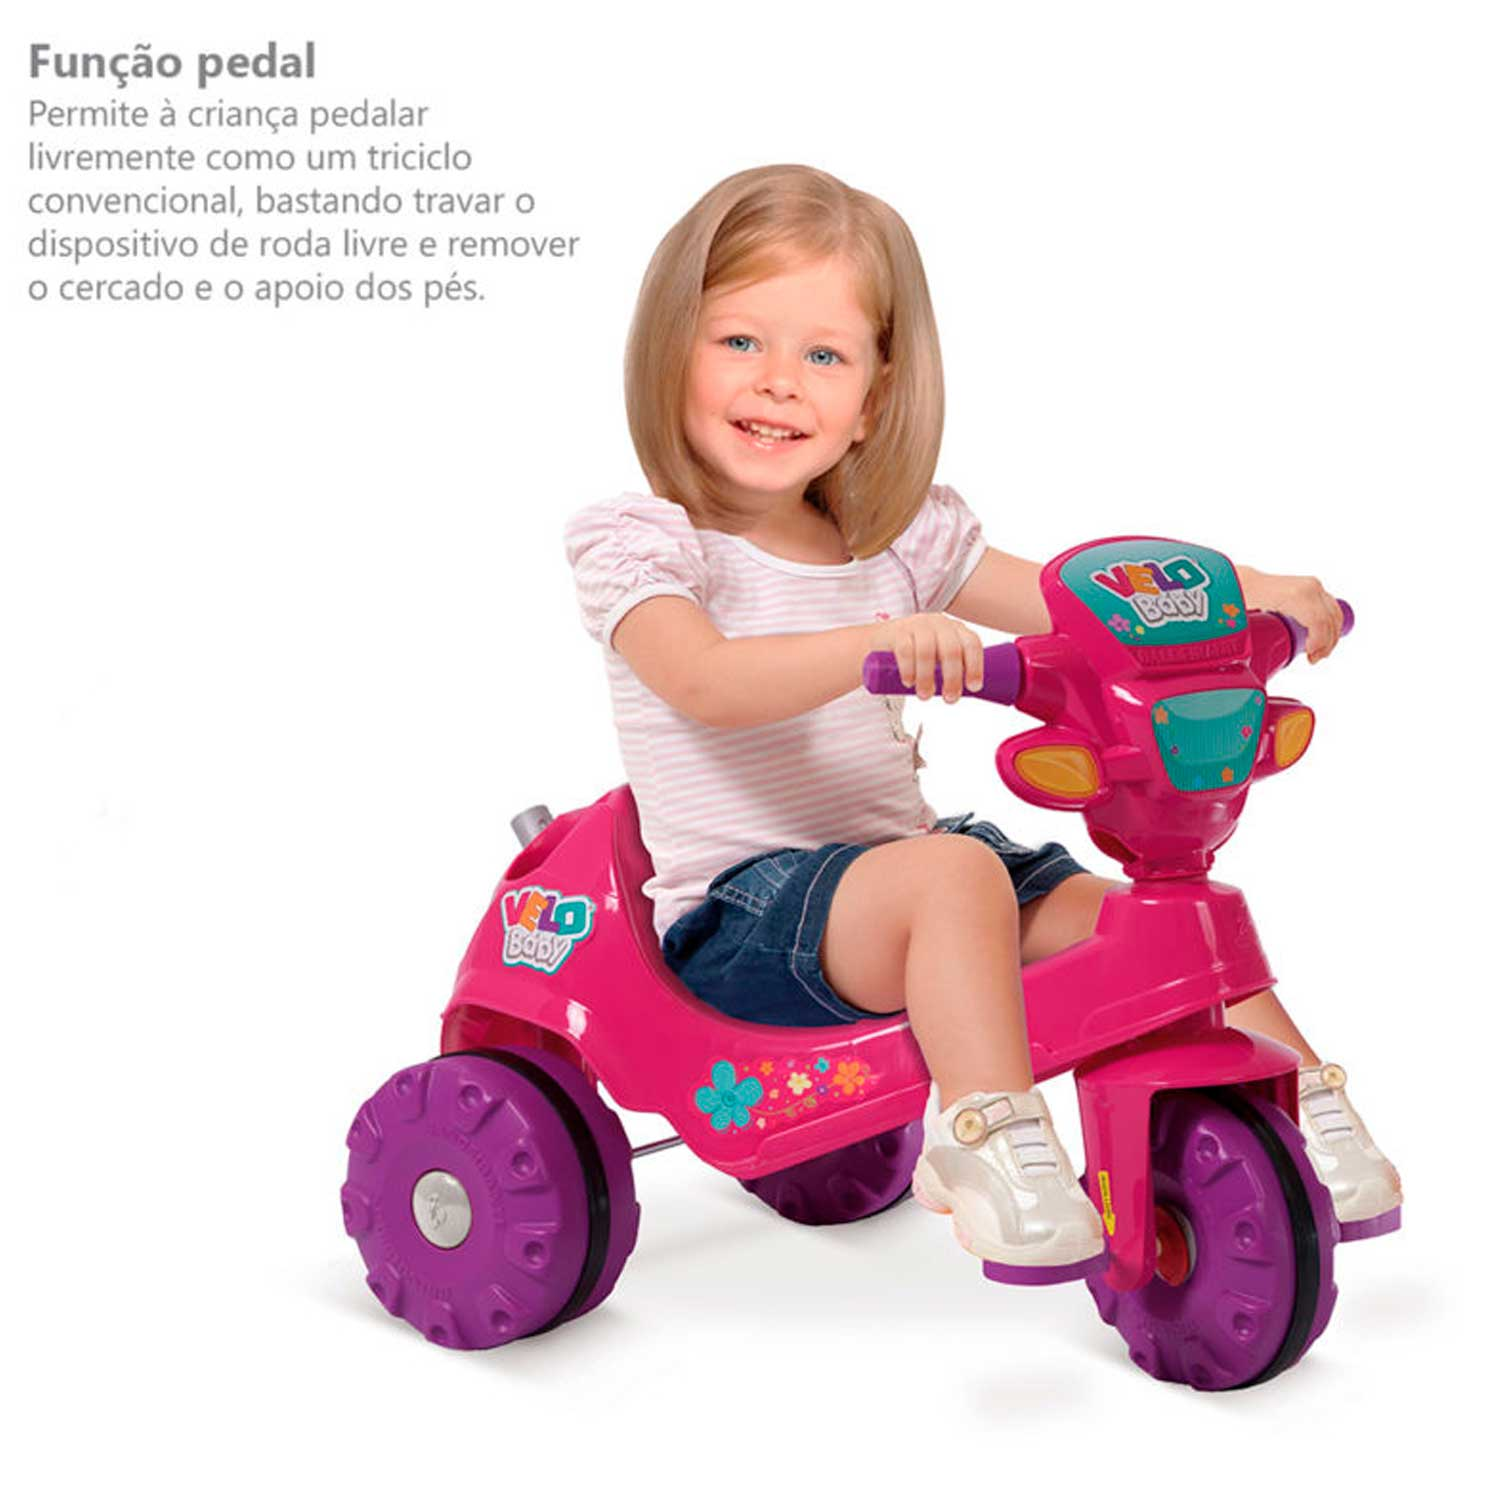 TRICICLO VELOBABY A PEDAL 1A+ BANDEIRANTE REF:207